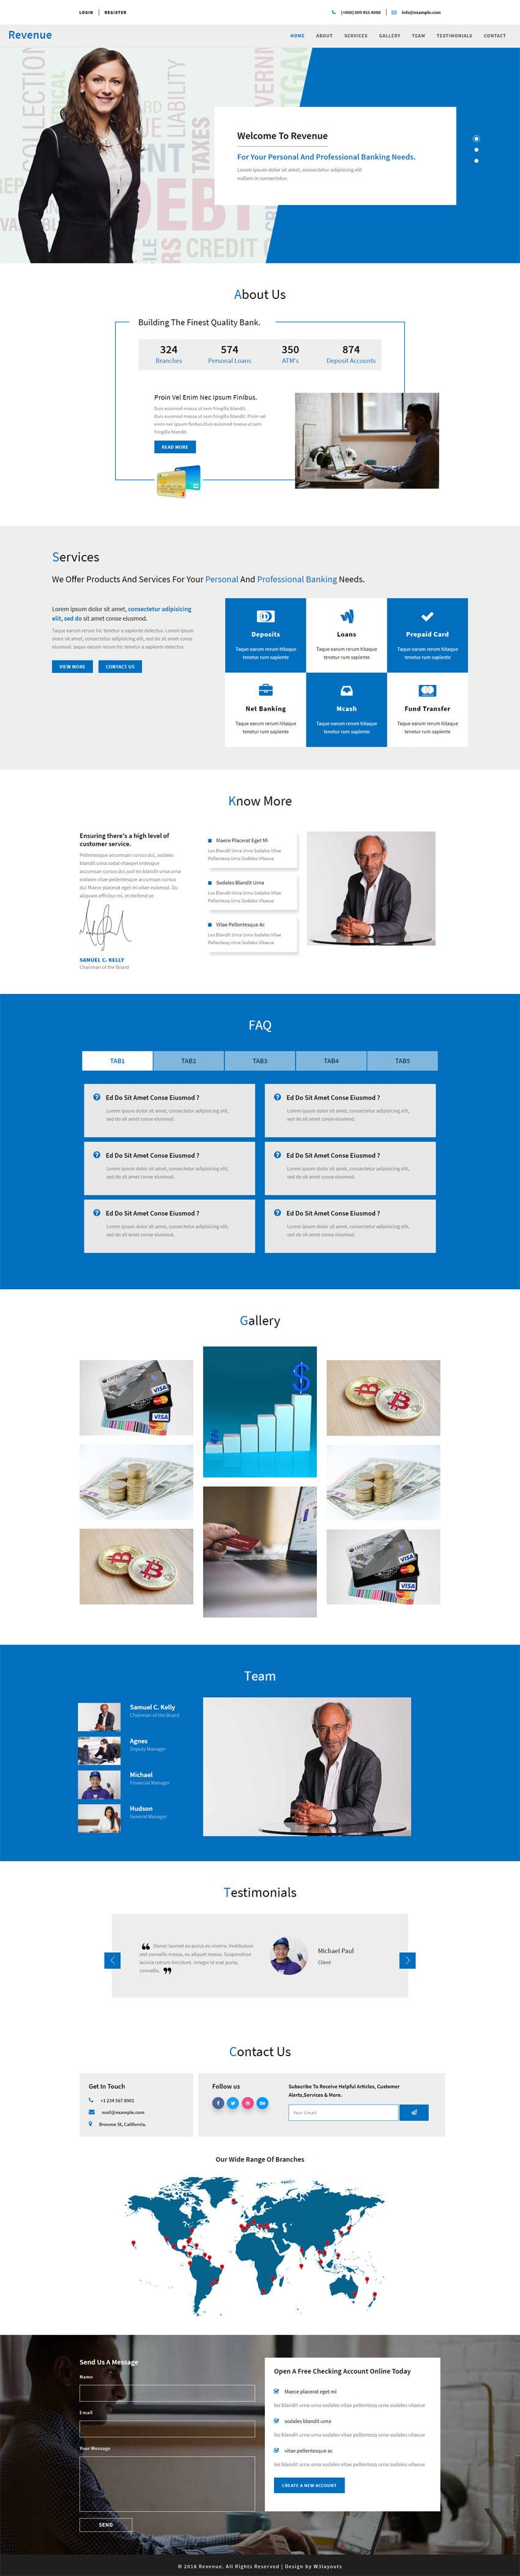 Revenue Banking Category Bootstrap Responsive Web Template  